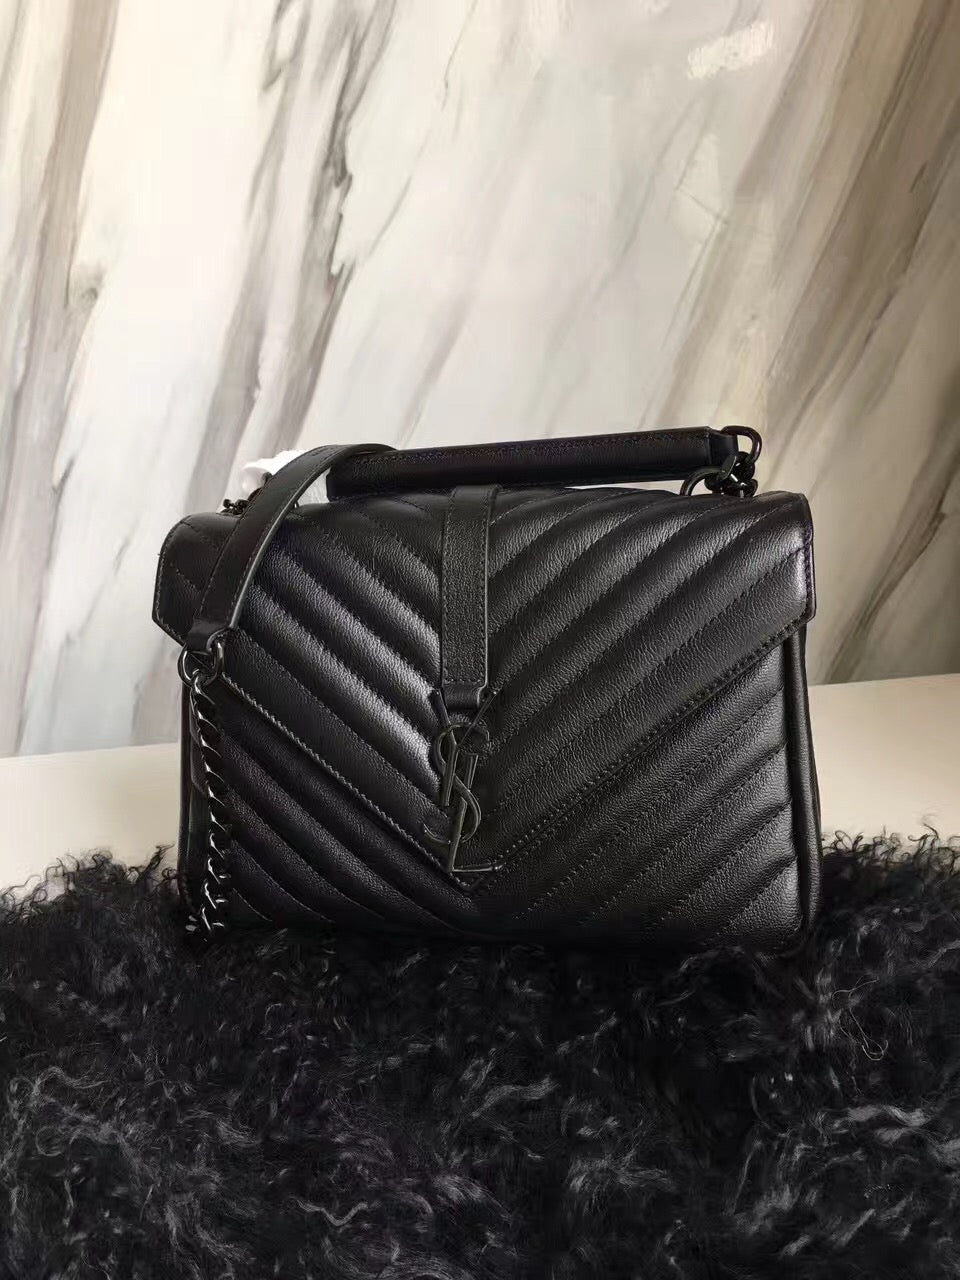 Bolsa tiracolo Collège YSL Saint Laurent - Loja Must Have